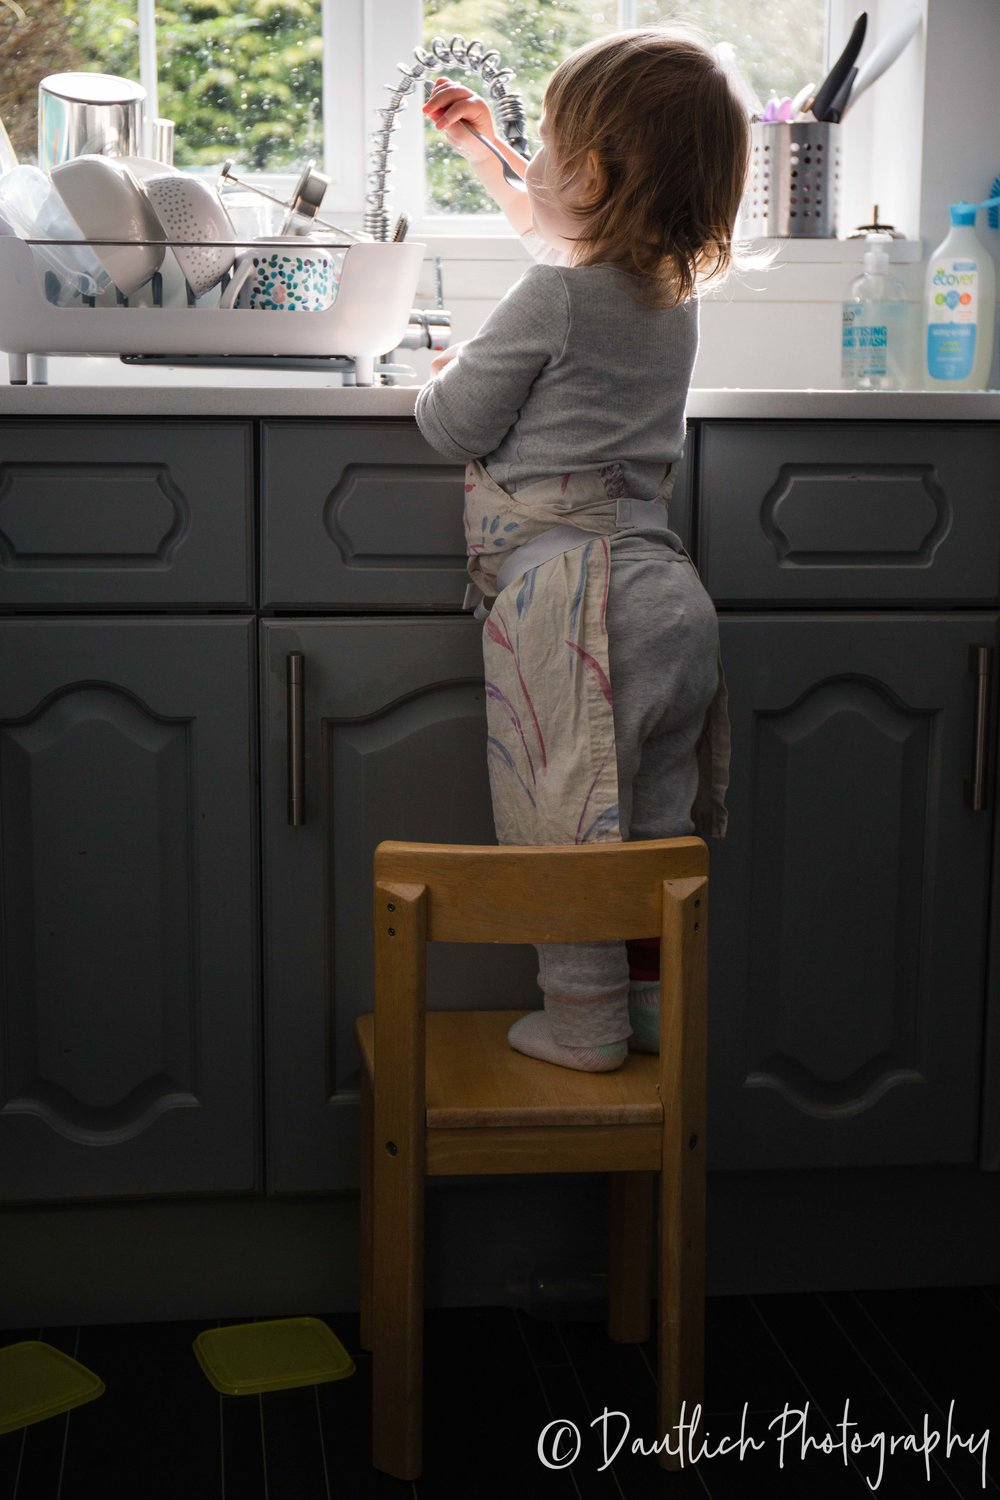 dautlich_photography_story_sink_play